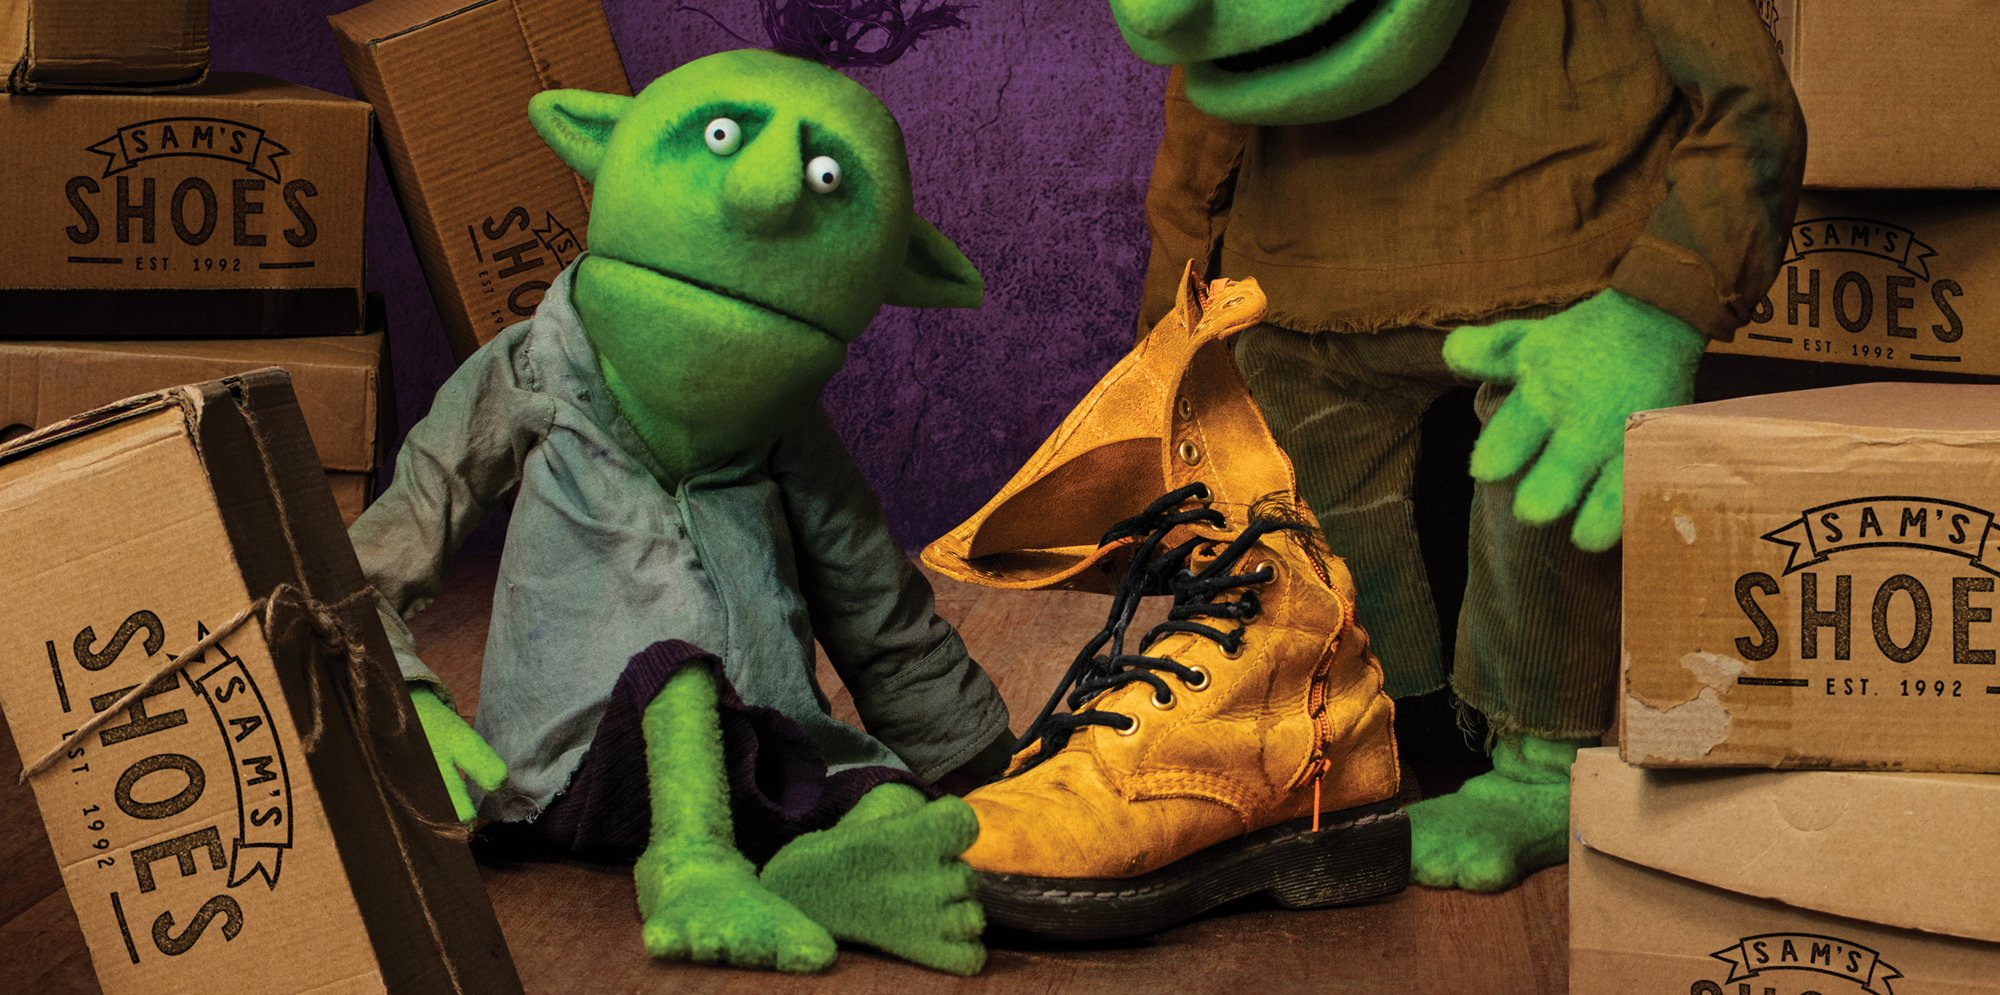 Two puppets of elves are sat and stood with a yellow boot. They are surrounded by boxes that says